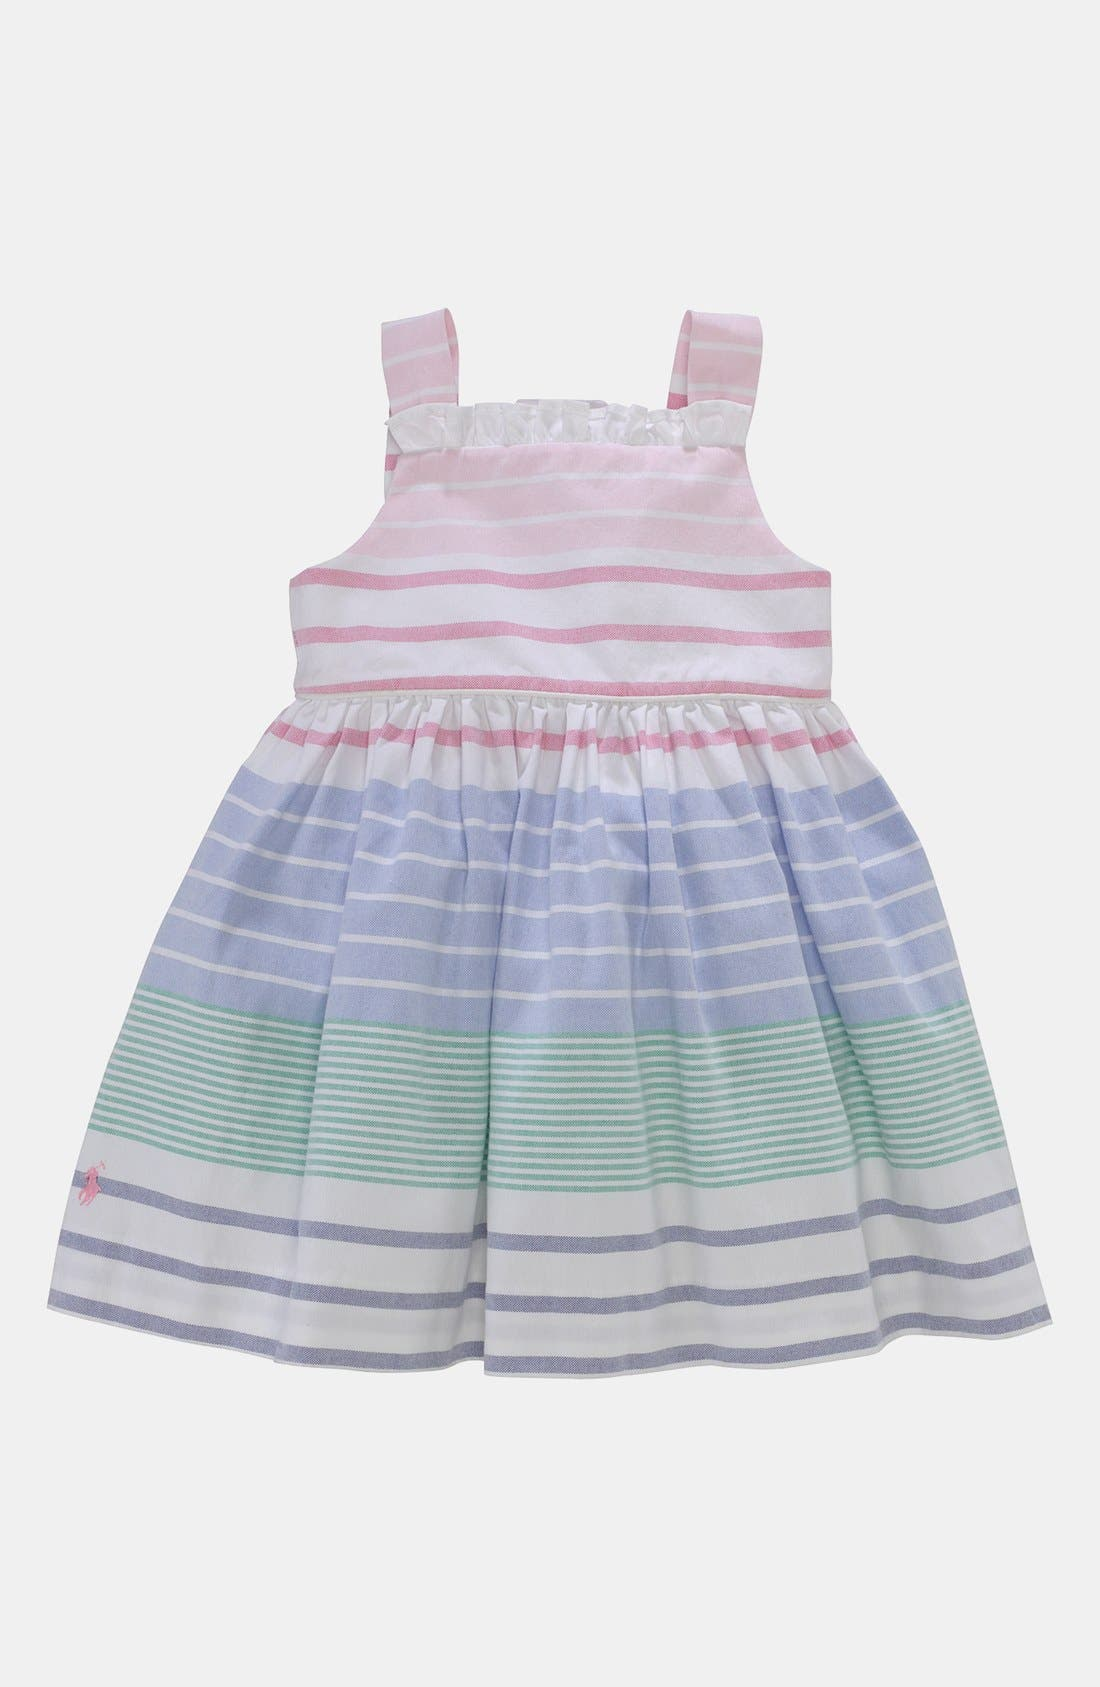 Alternate Image 1 Selected - Ralph Lauren Stripe Oxford Dress & Bloomers (Baby)